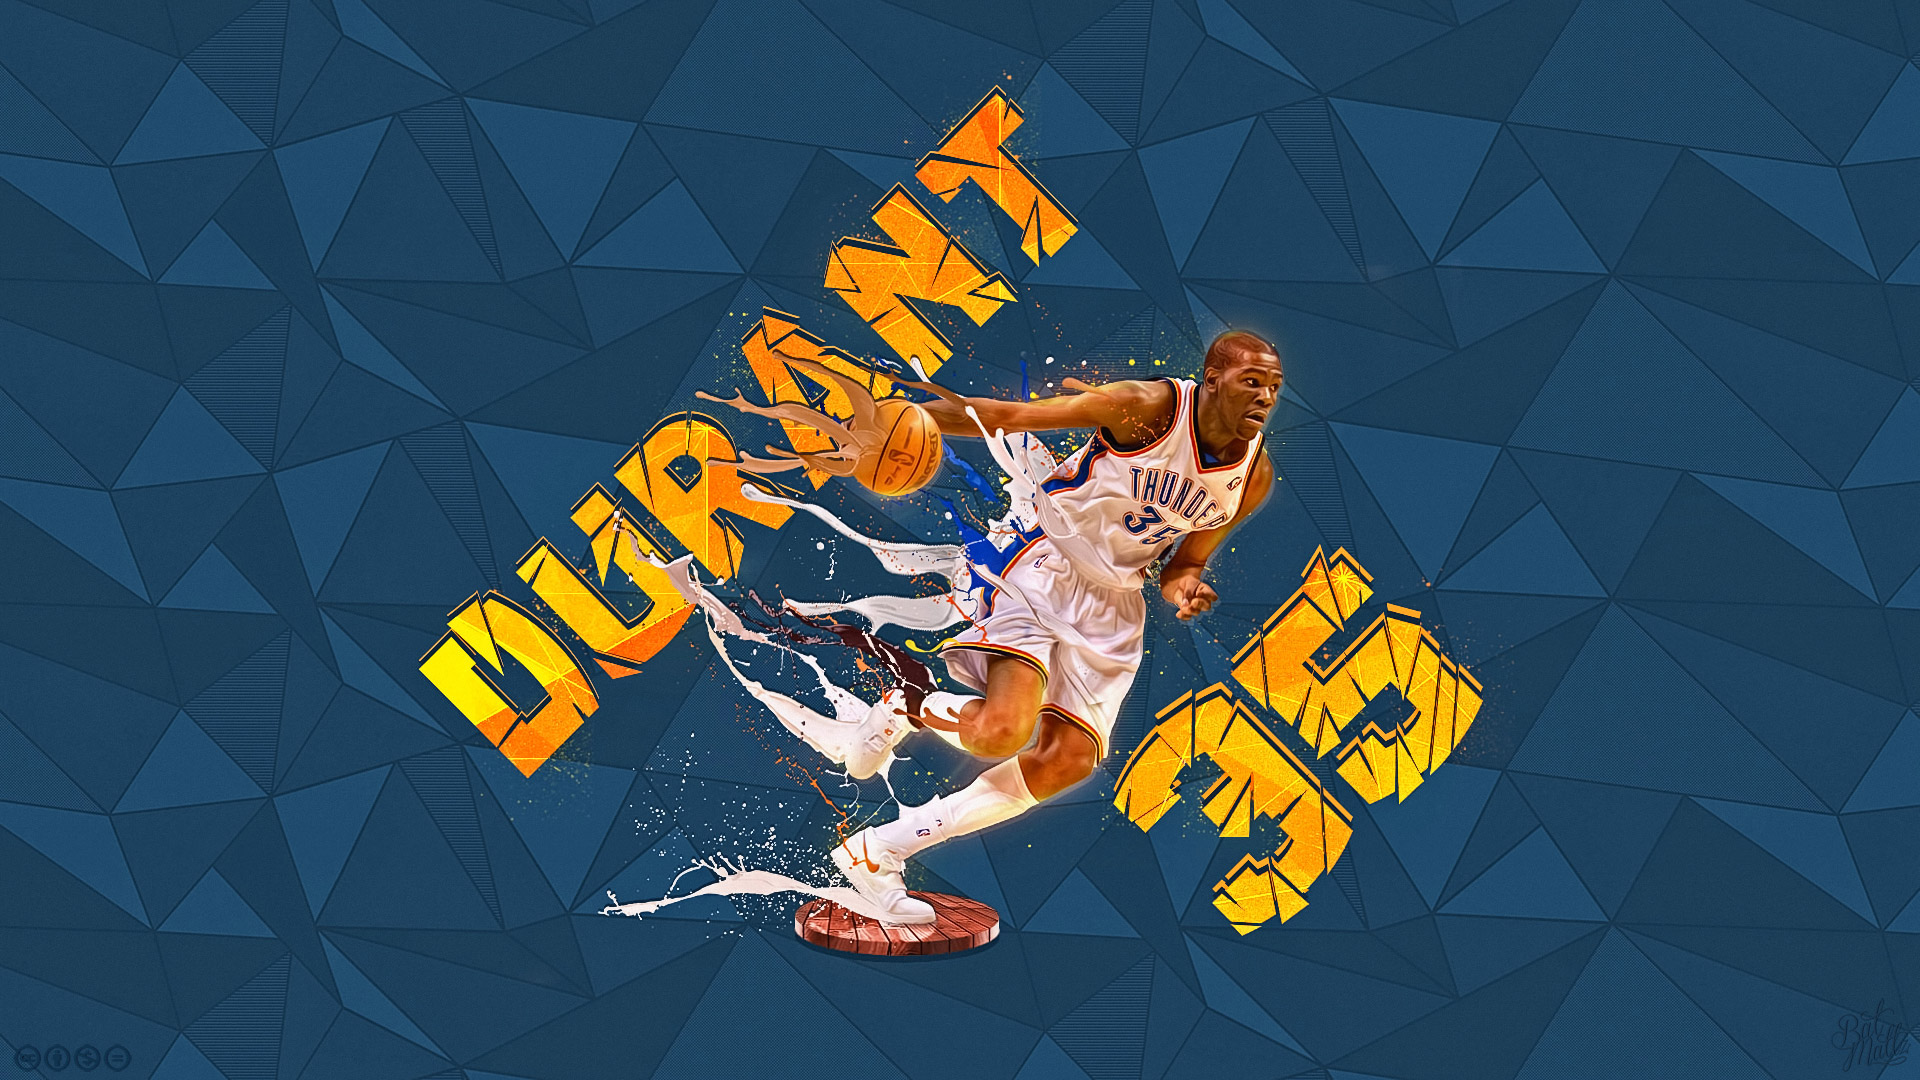 Kevin Durant 2014 1920×1080 Wallpaper | Basketball ...